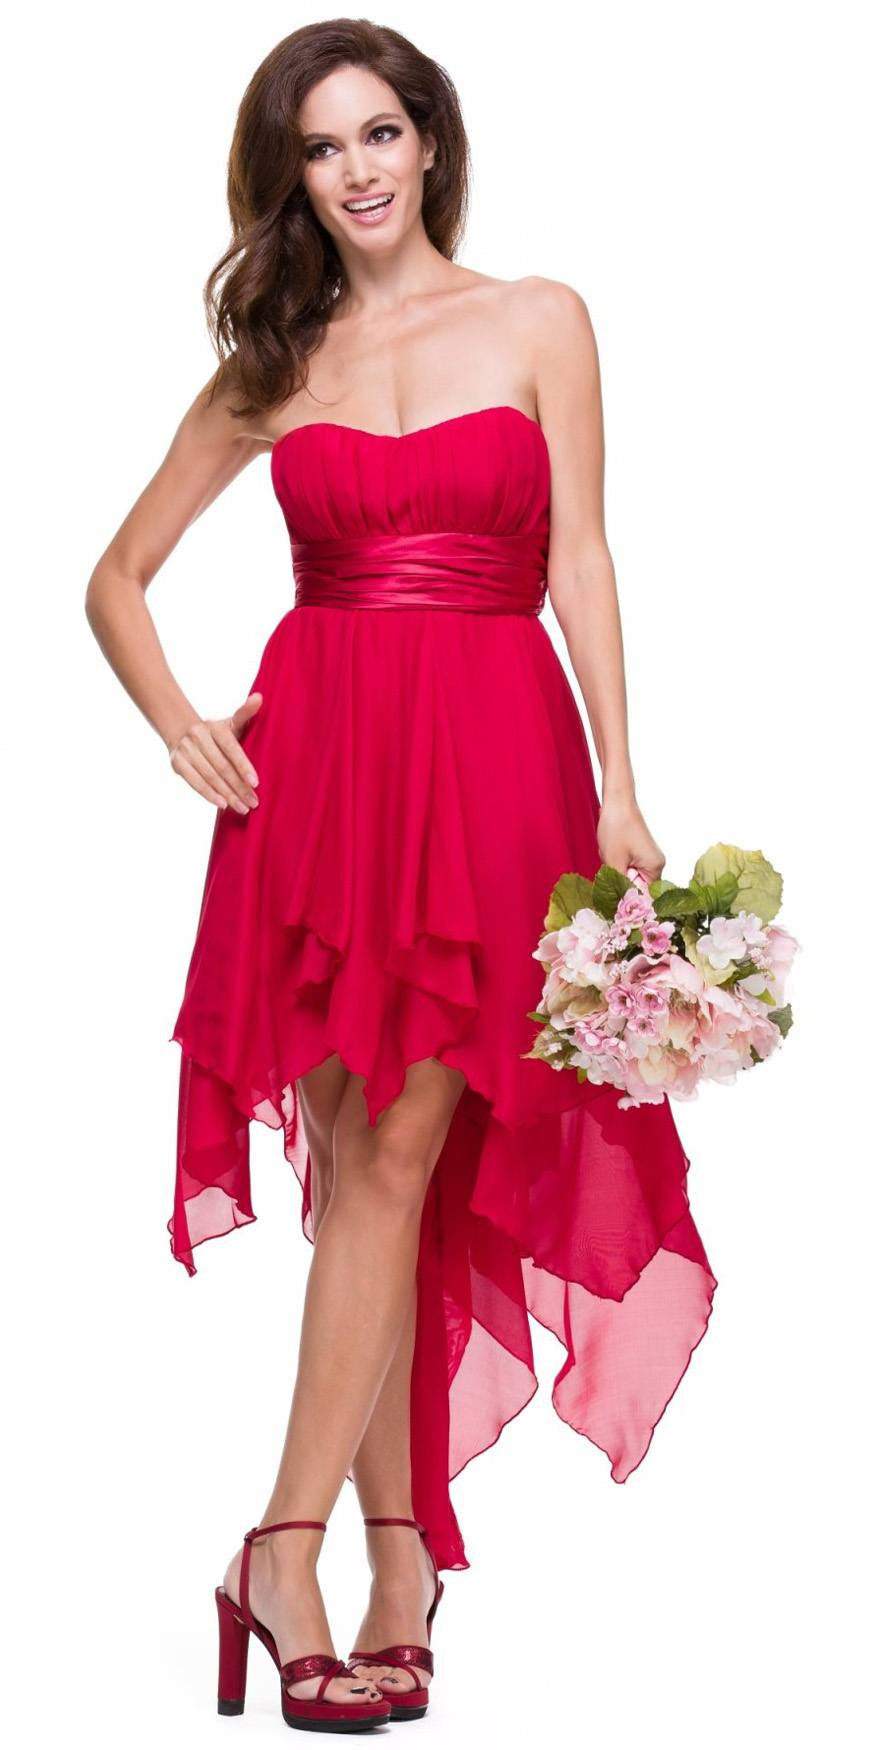 b6fa48b5c33d High Low Chiffon Red Bridesmaid Dress Strapless Layered Skirt. Tap to expand